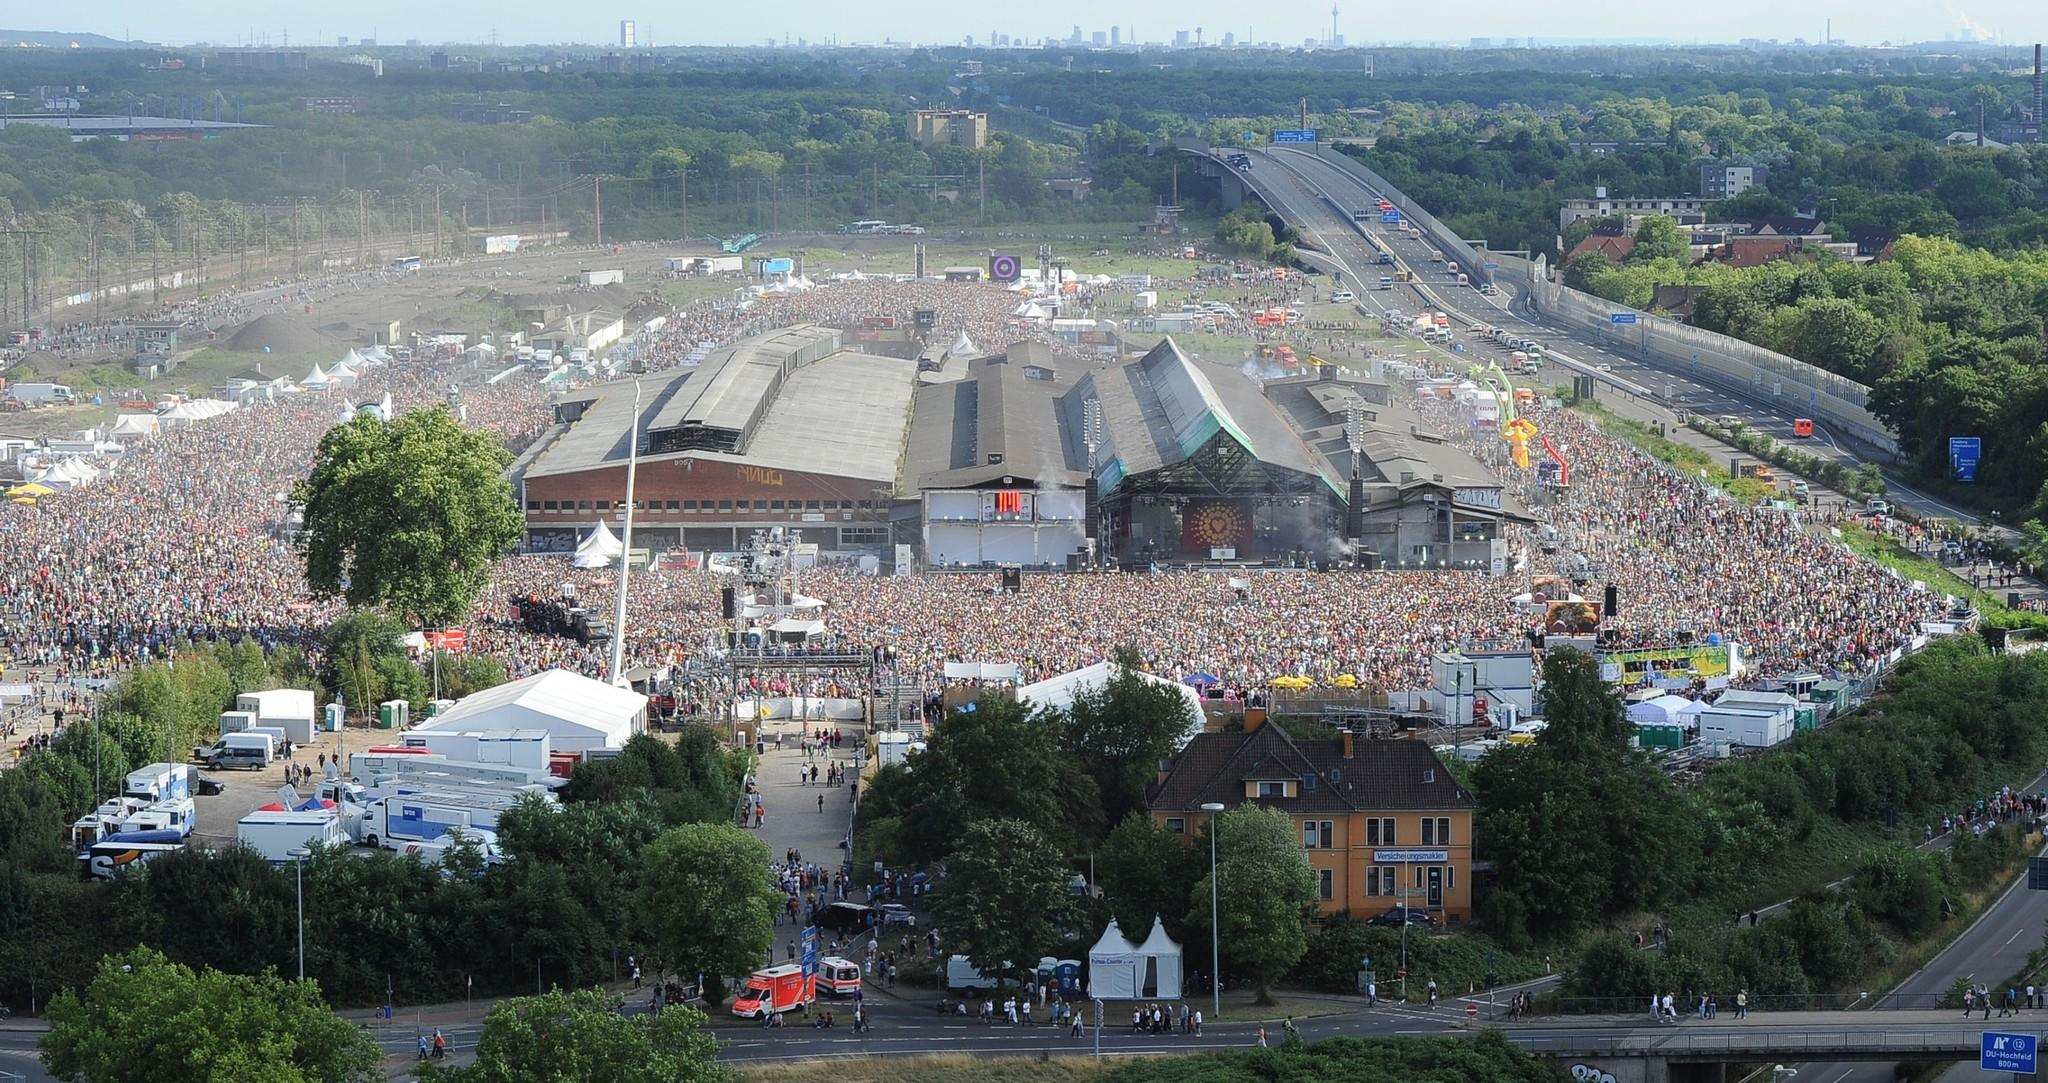 Picture taken on July 24, 2010 shows visitors of the Love Parade music festival crowding at the festival site, a former freight area, in Duisburg, western Germany.